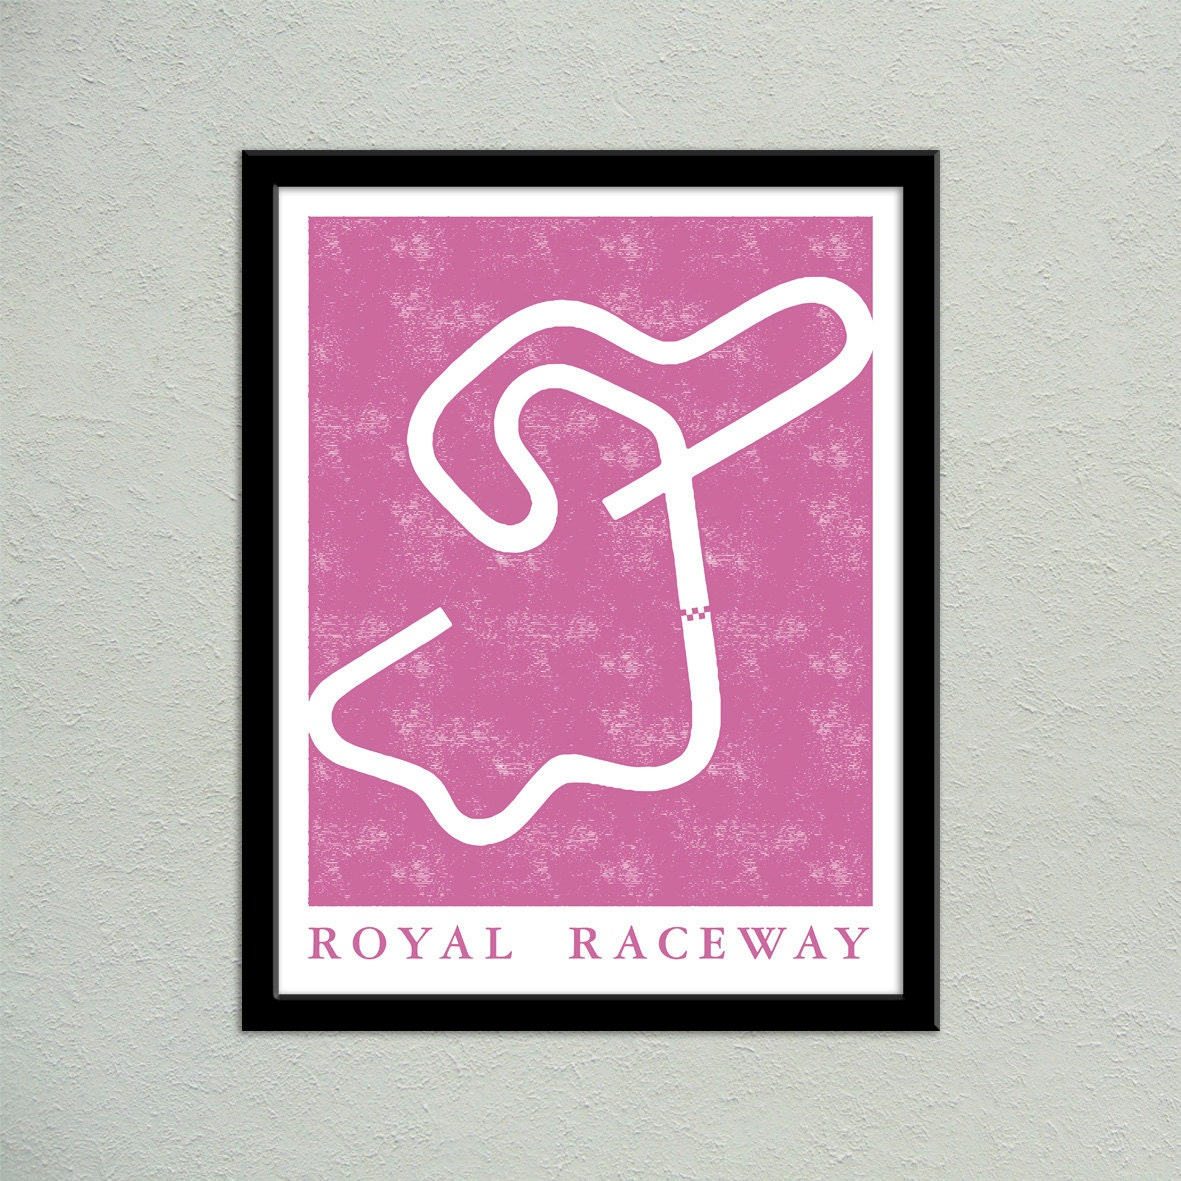 Mario kart 64 royal raceway track map poster super mario zoom gumiabroncs Image collections